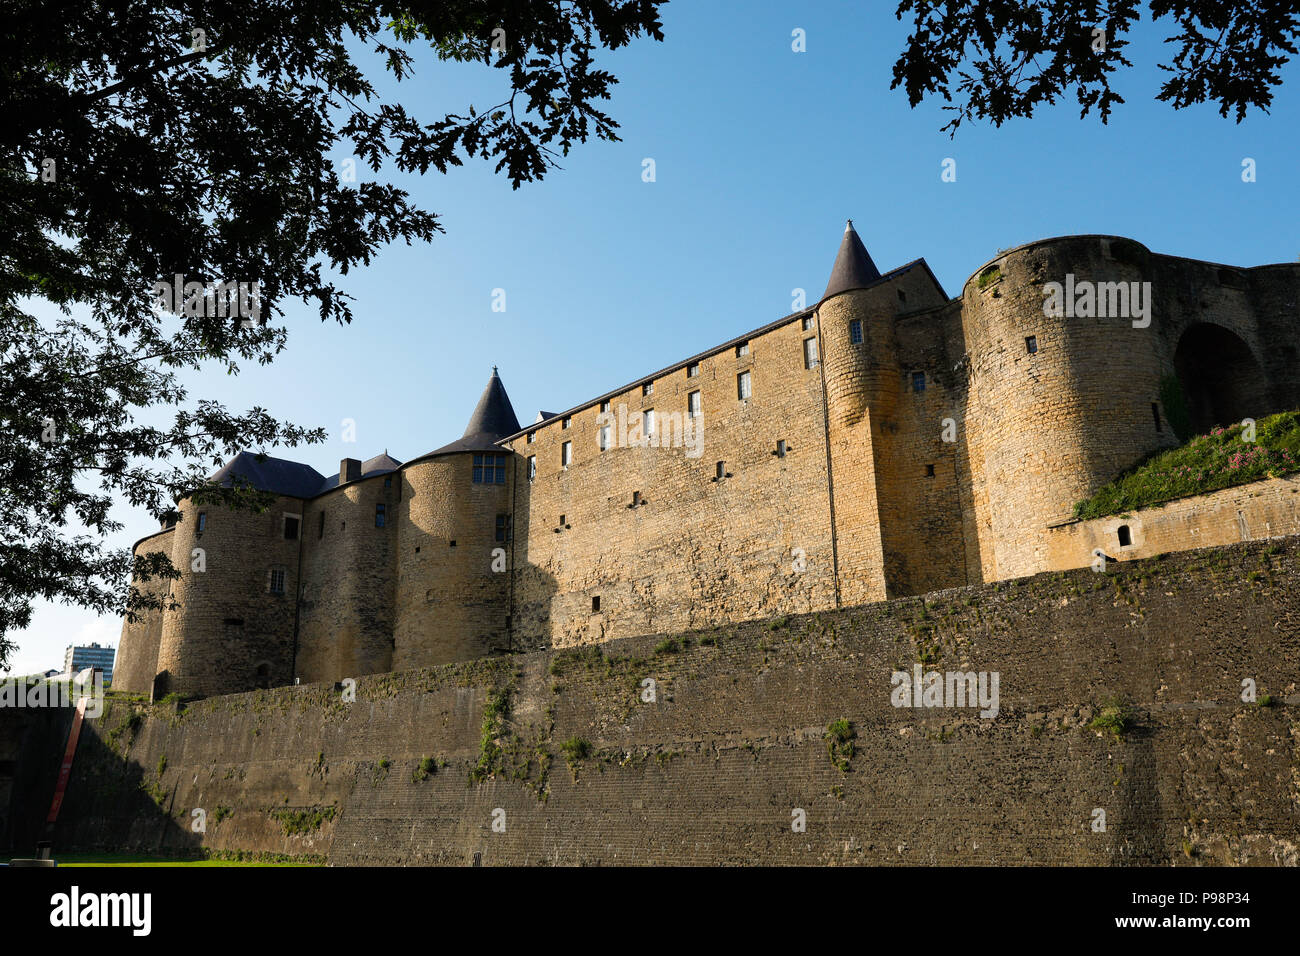 Sedan castle, known locally as Chateau Fort de Sedan, in the Ardennes department, northern France. - Stock Image